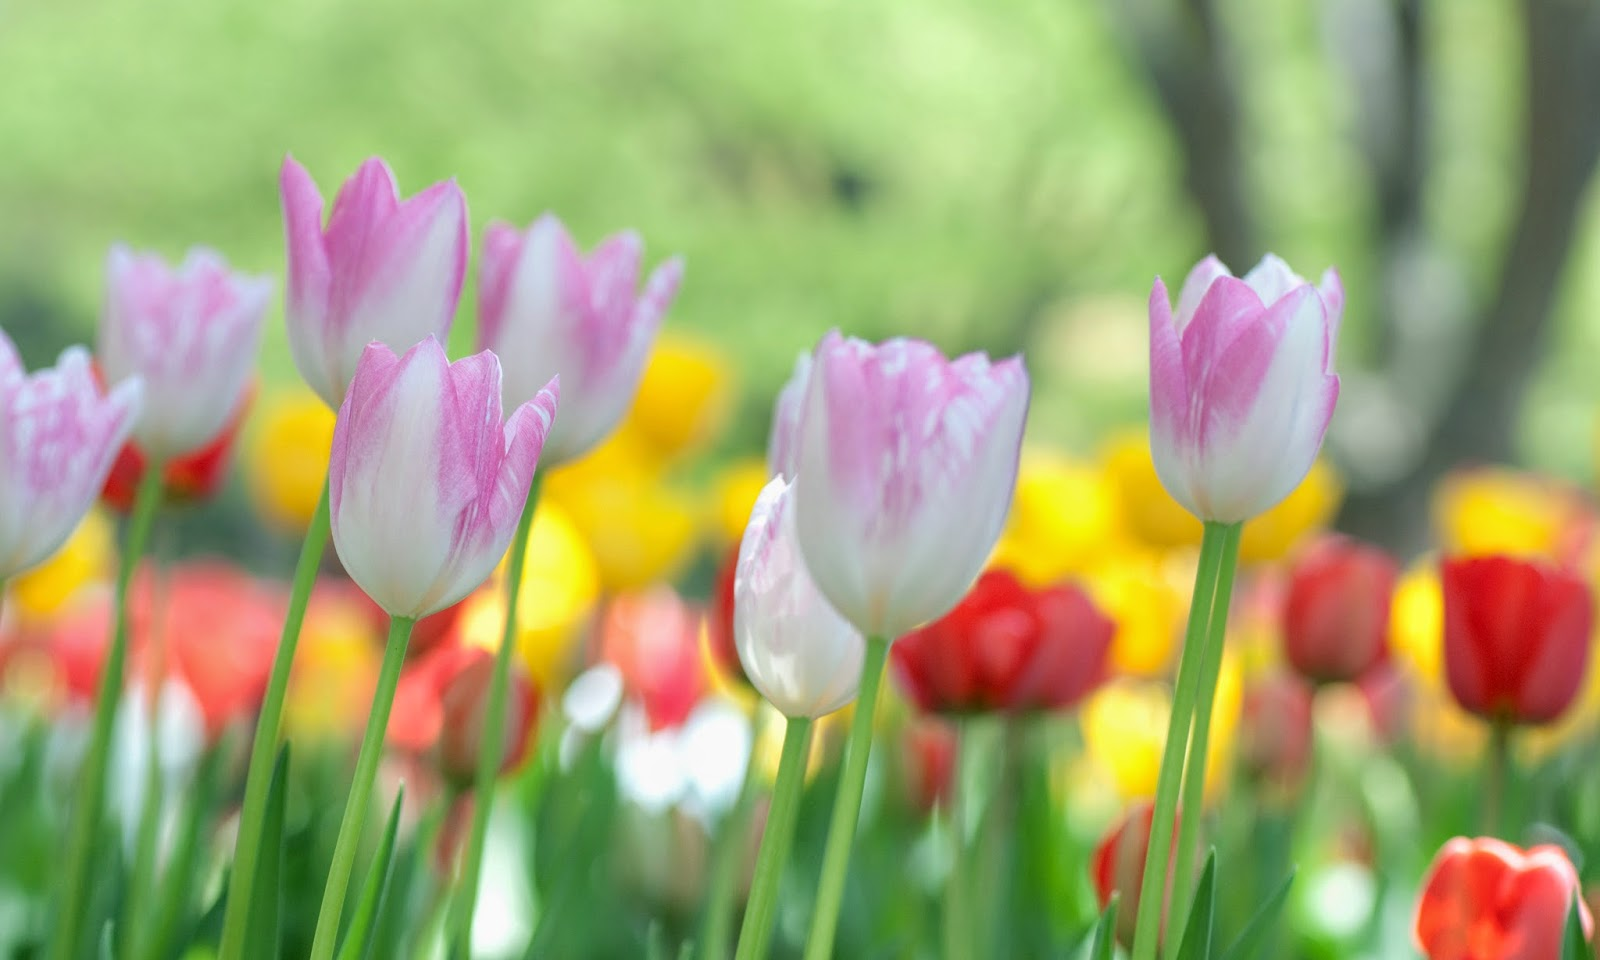 Tulips HD Wallpapers Free Download #0213